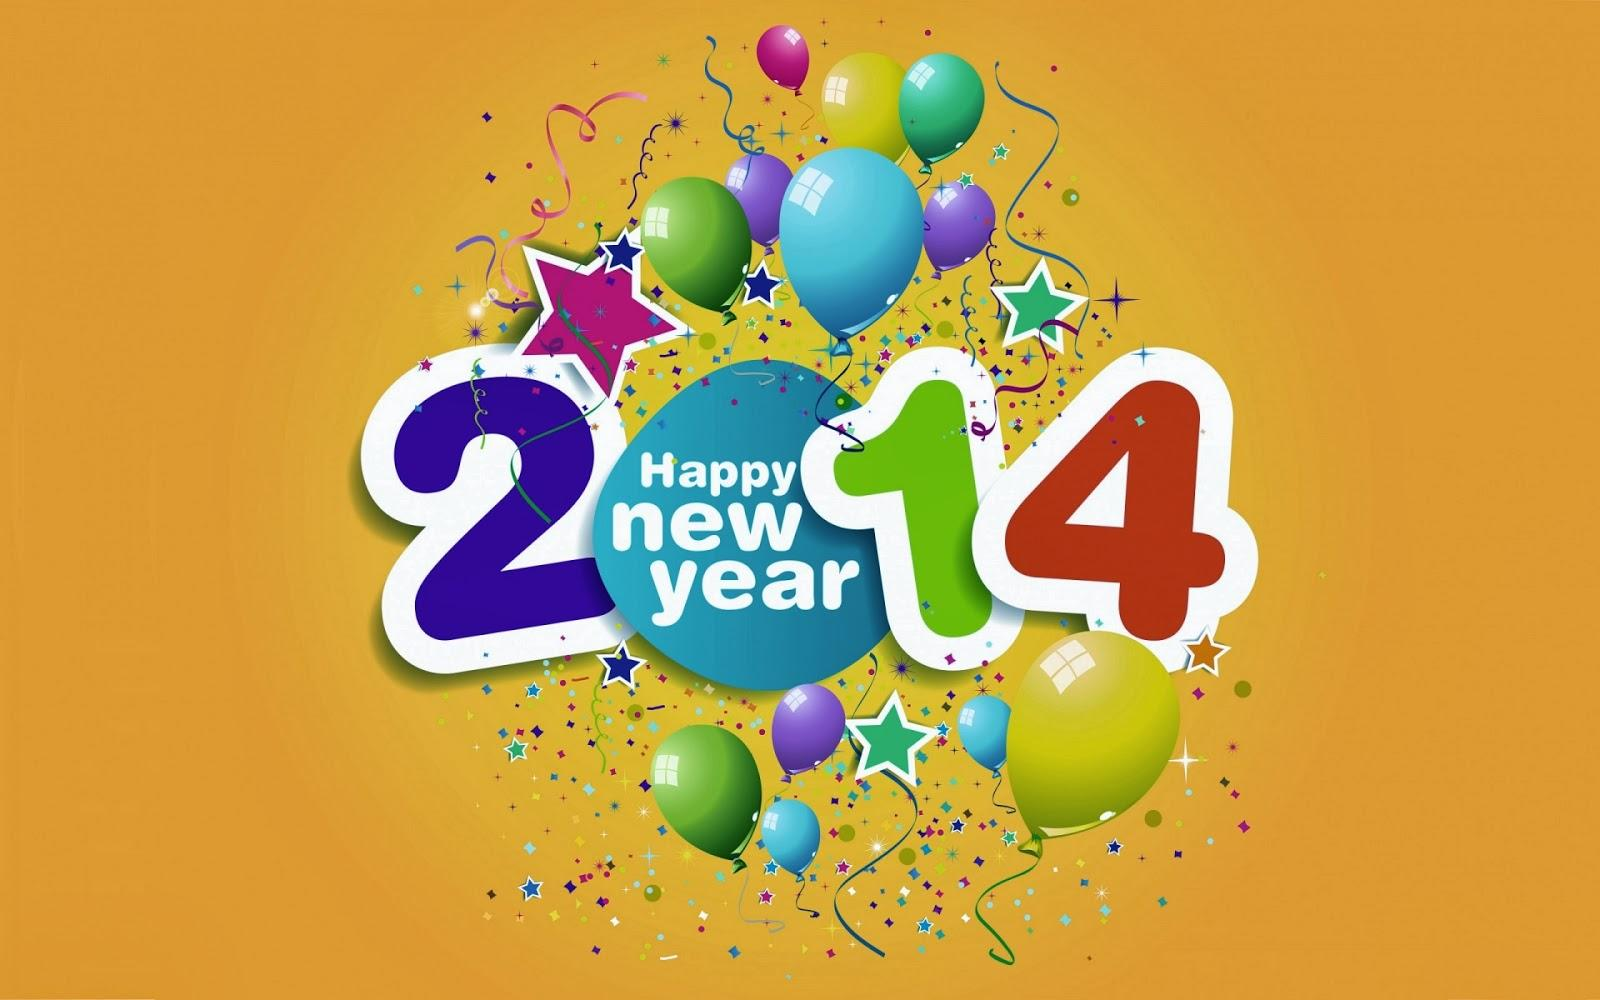 happy new year 2014-1920x1200